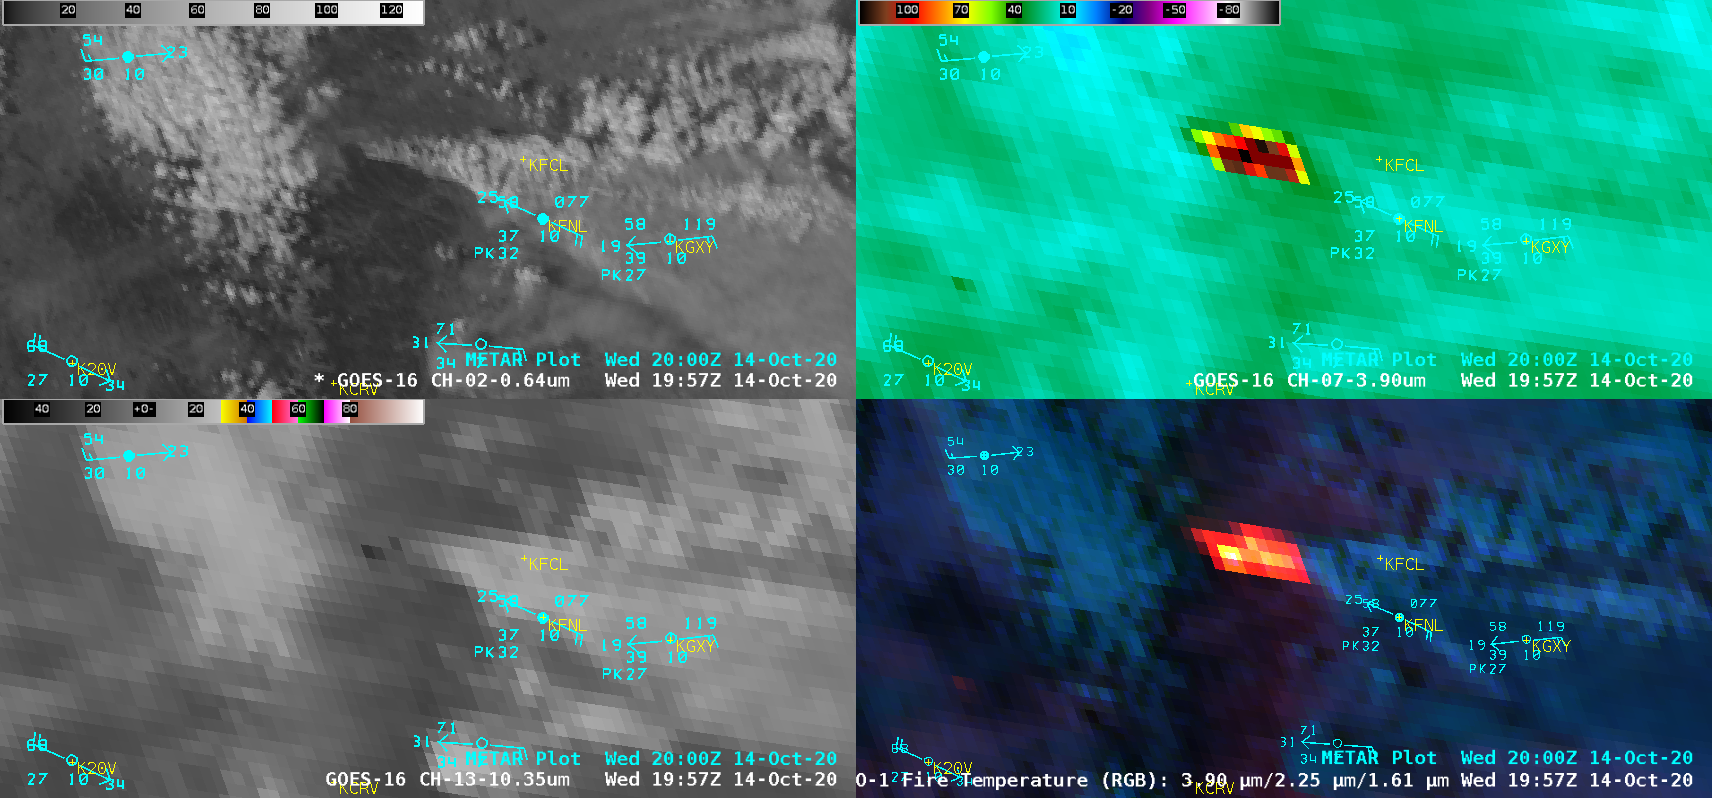 "GOES-16 ""Red"" Visible (0.64 µm, top left), Shortwave Infrared (3.9 µm, top right), ""Clean"" Infrared Window (10.35 µm, bottom left) and Fire Temperature RGB (bottom right) [click to play animation 